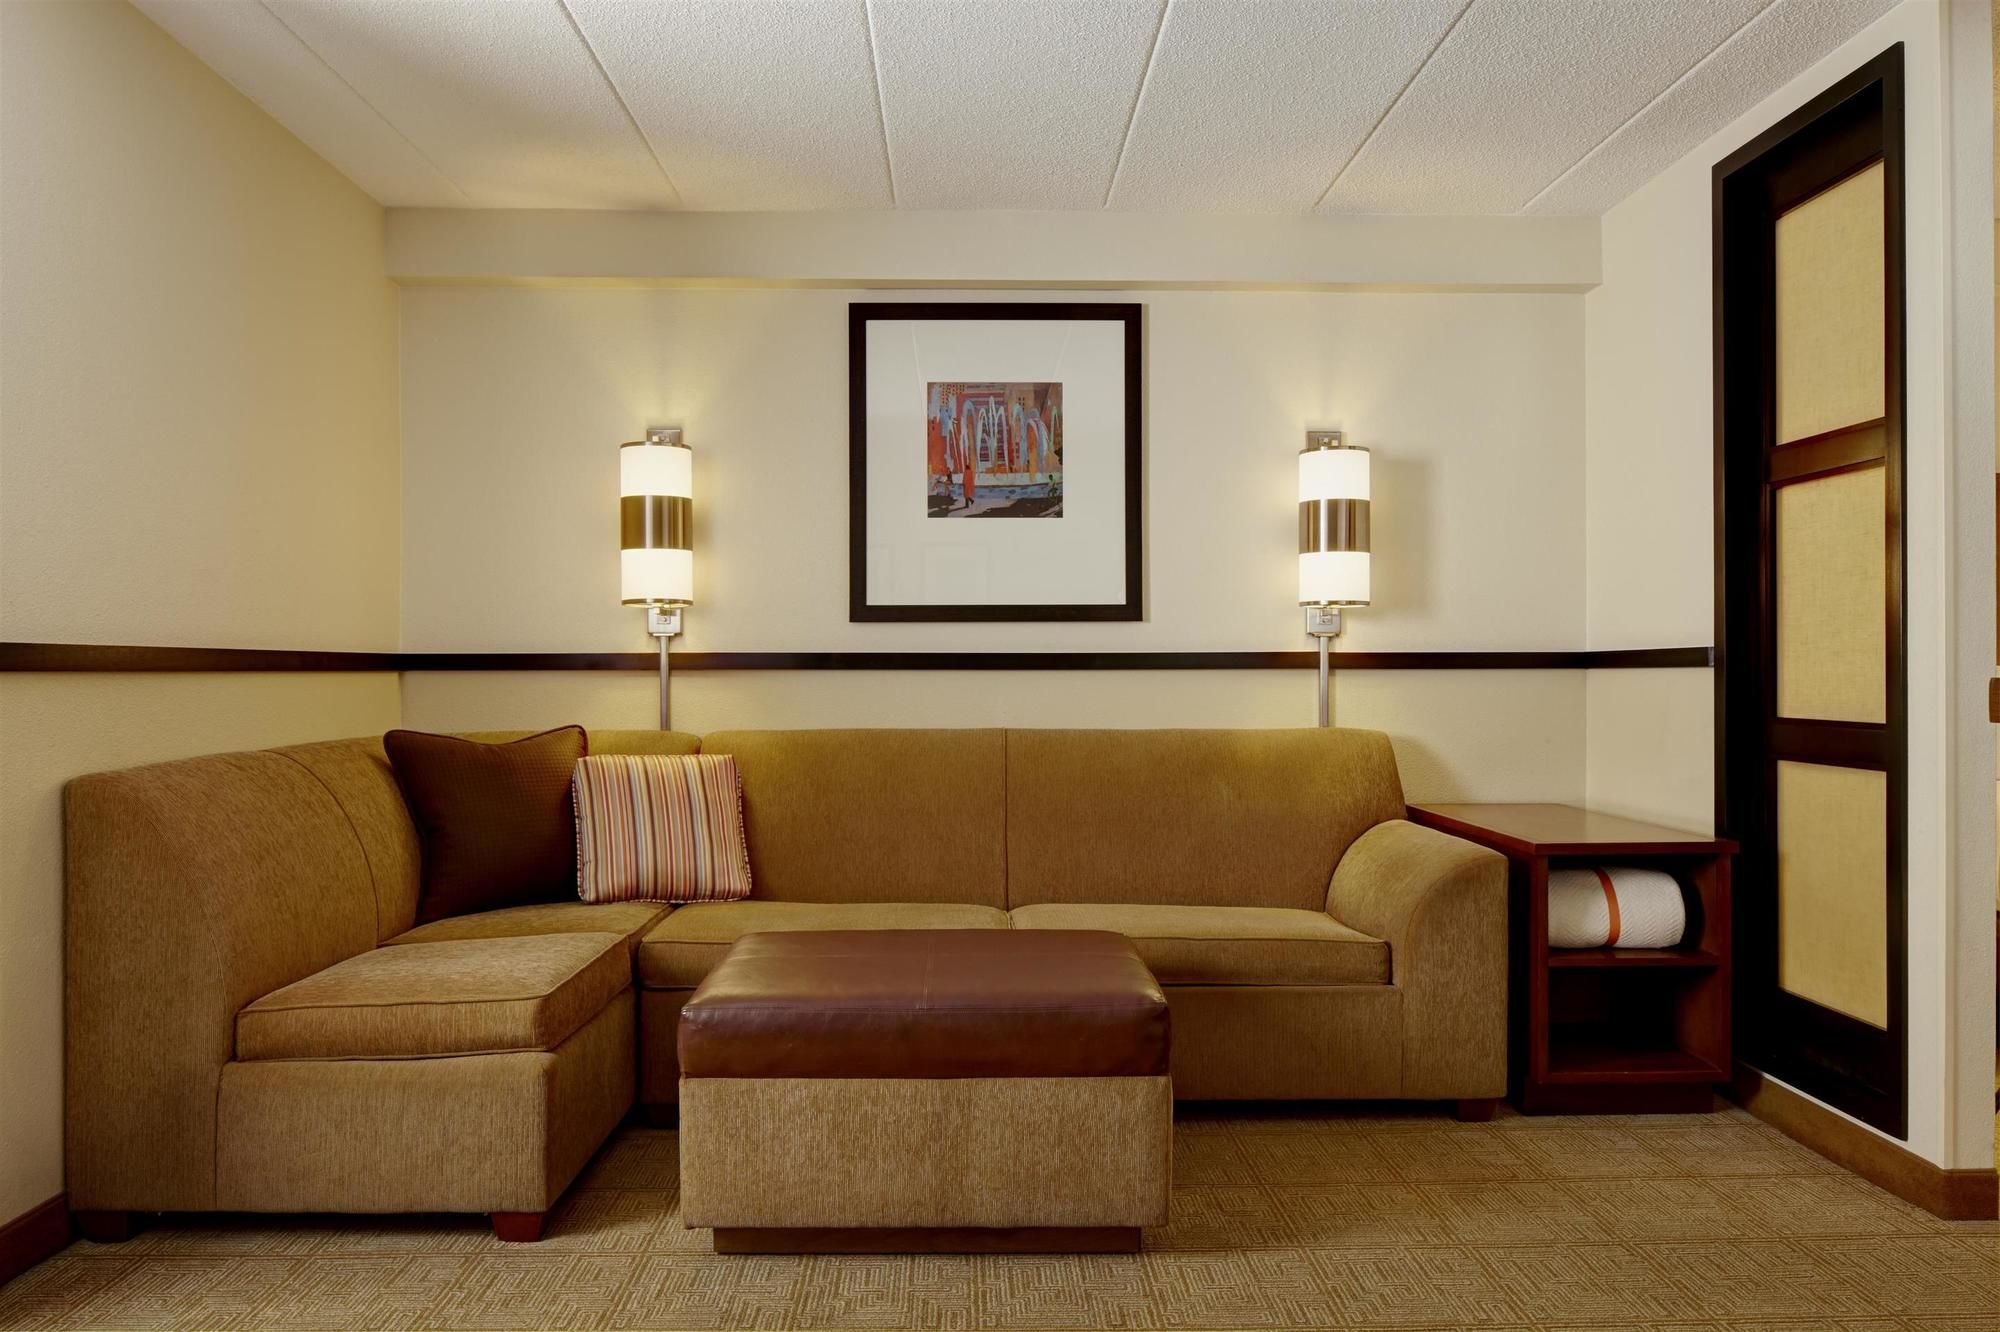 Duluth Hotel Coupons for Duluth, Georgia - FreeHotelCoupons.com